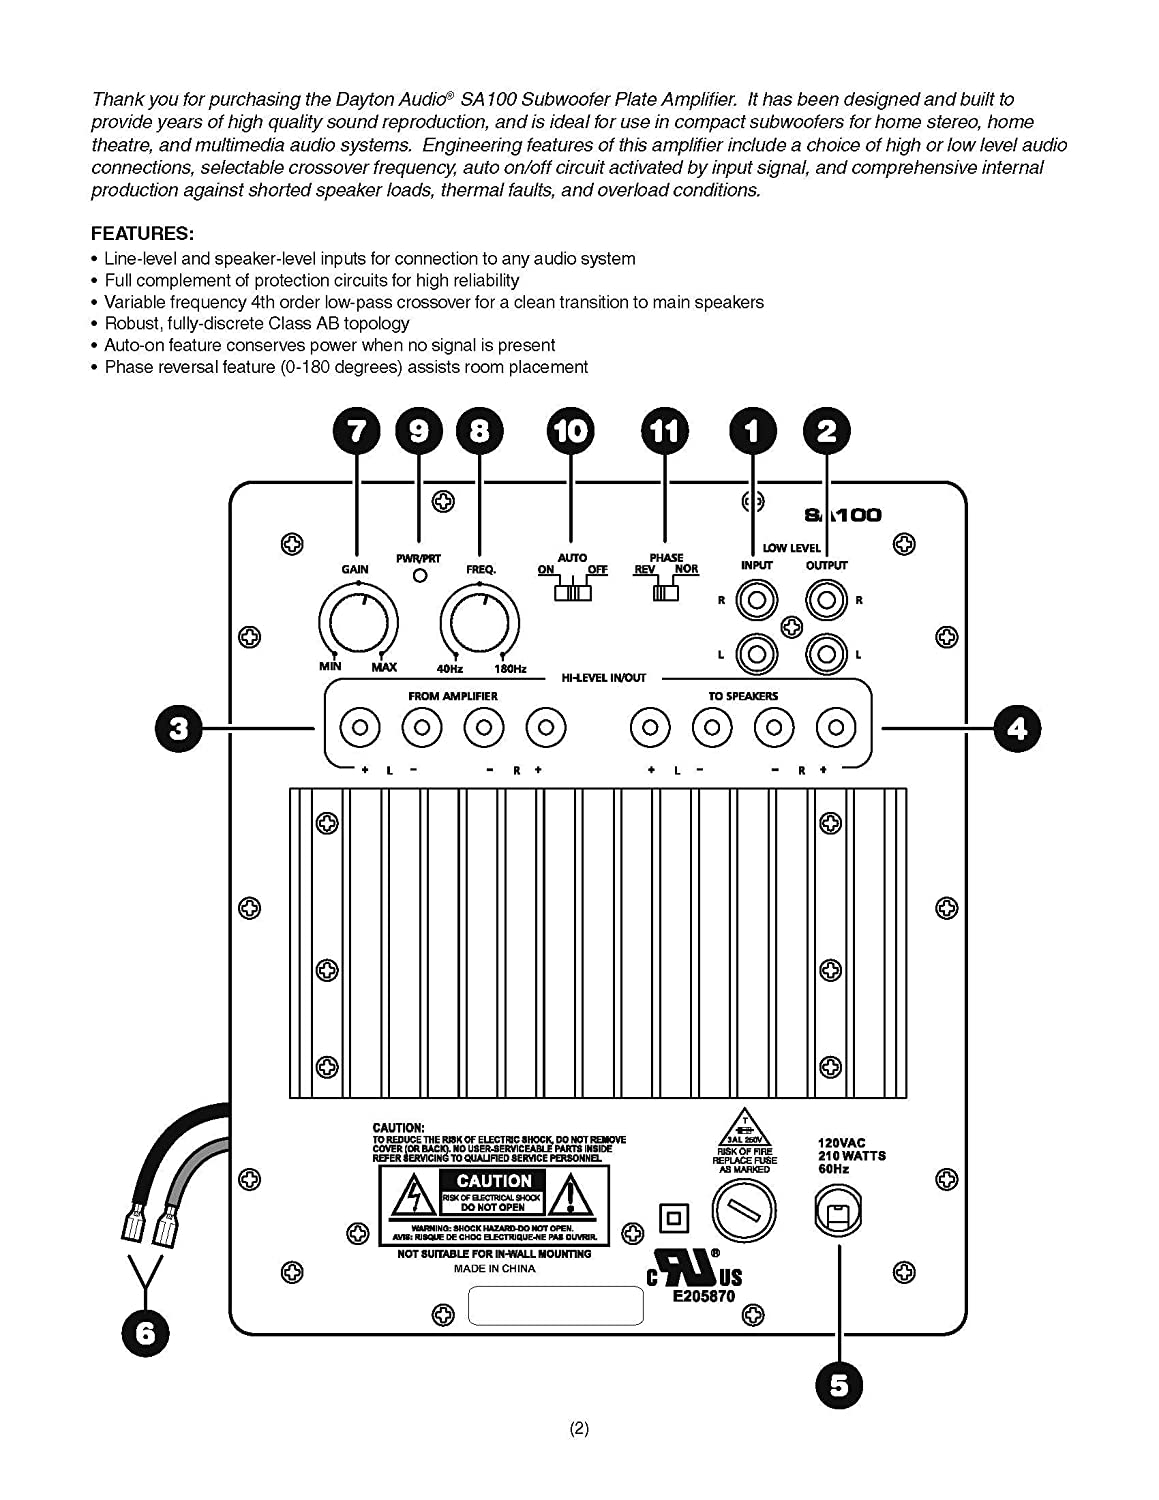 Dayton Audio Sa100 100w Subwoofer Plate Amplifier Circuit Wiring Diagram Electronics